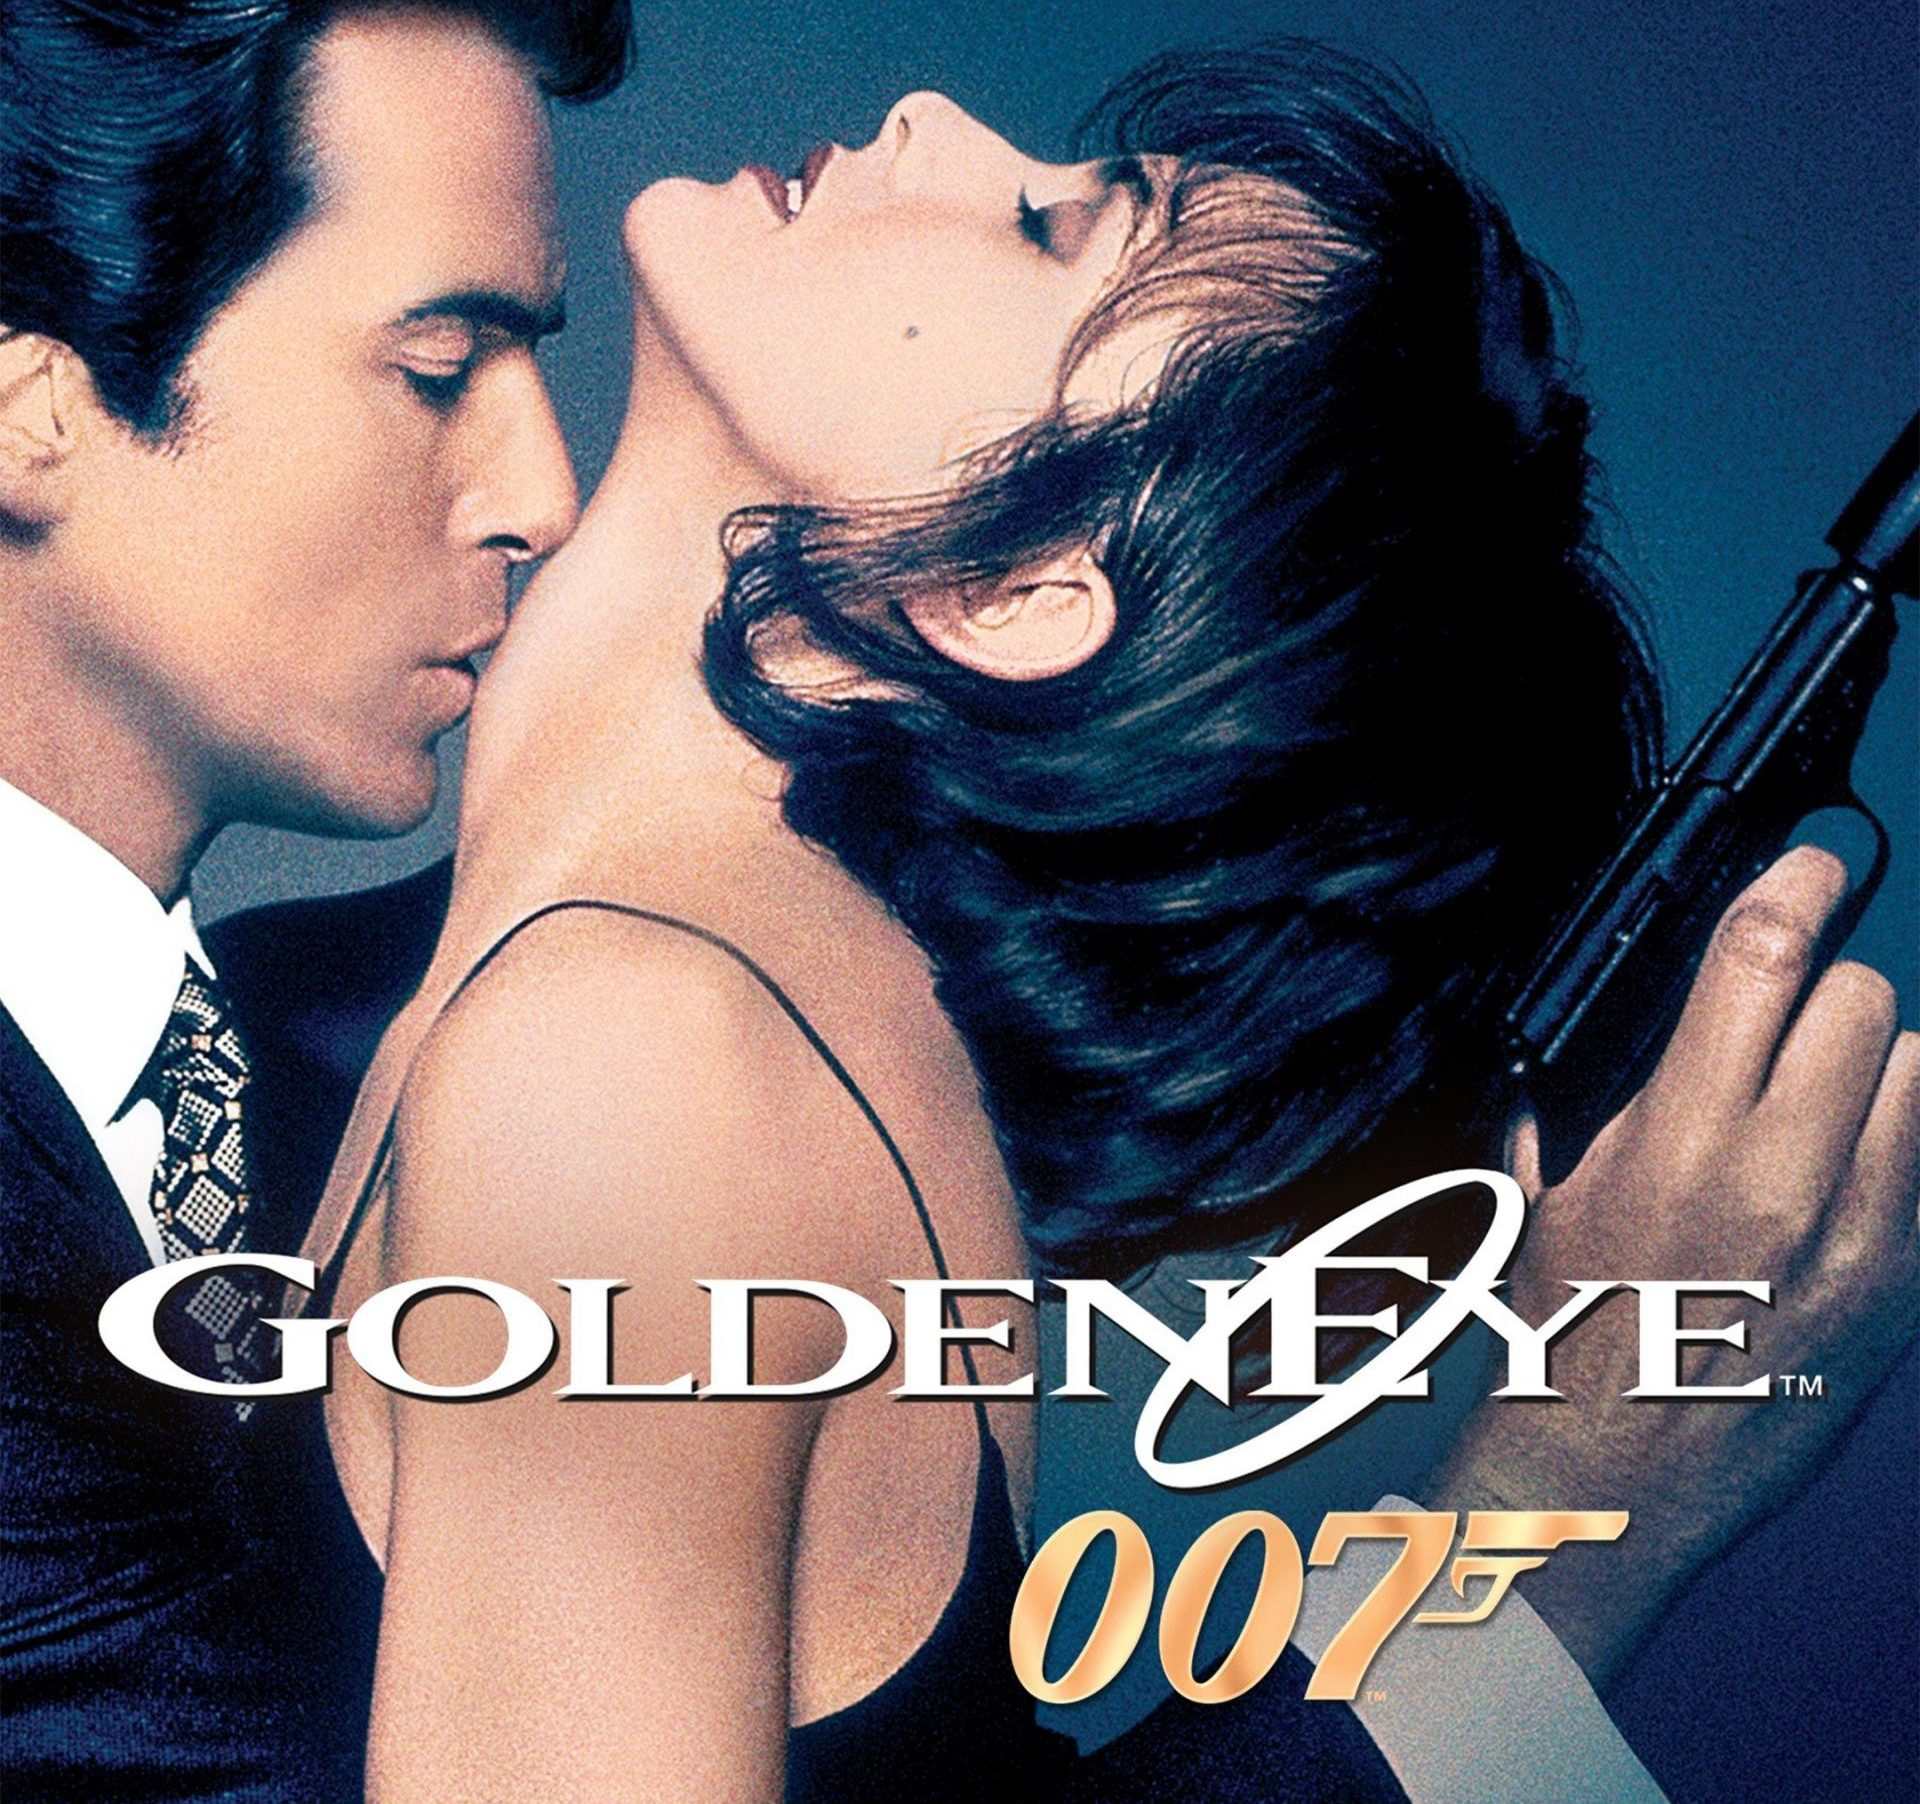 p17416 p v13 ax scaled e1621513773582 20 Facts About GoldenEye Even A Secret Satellite Couldn't Uncover!